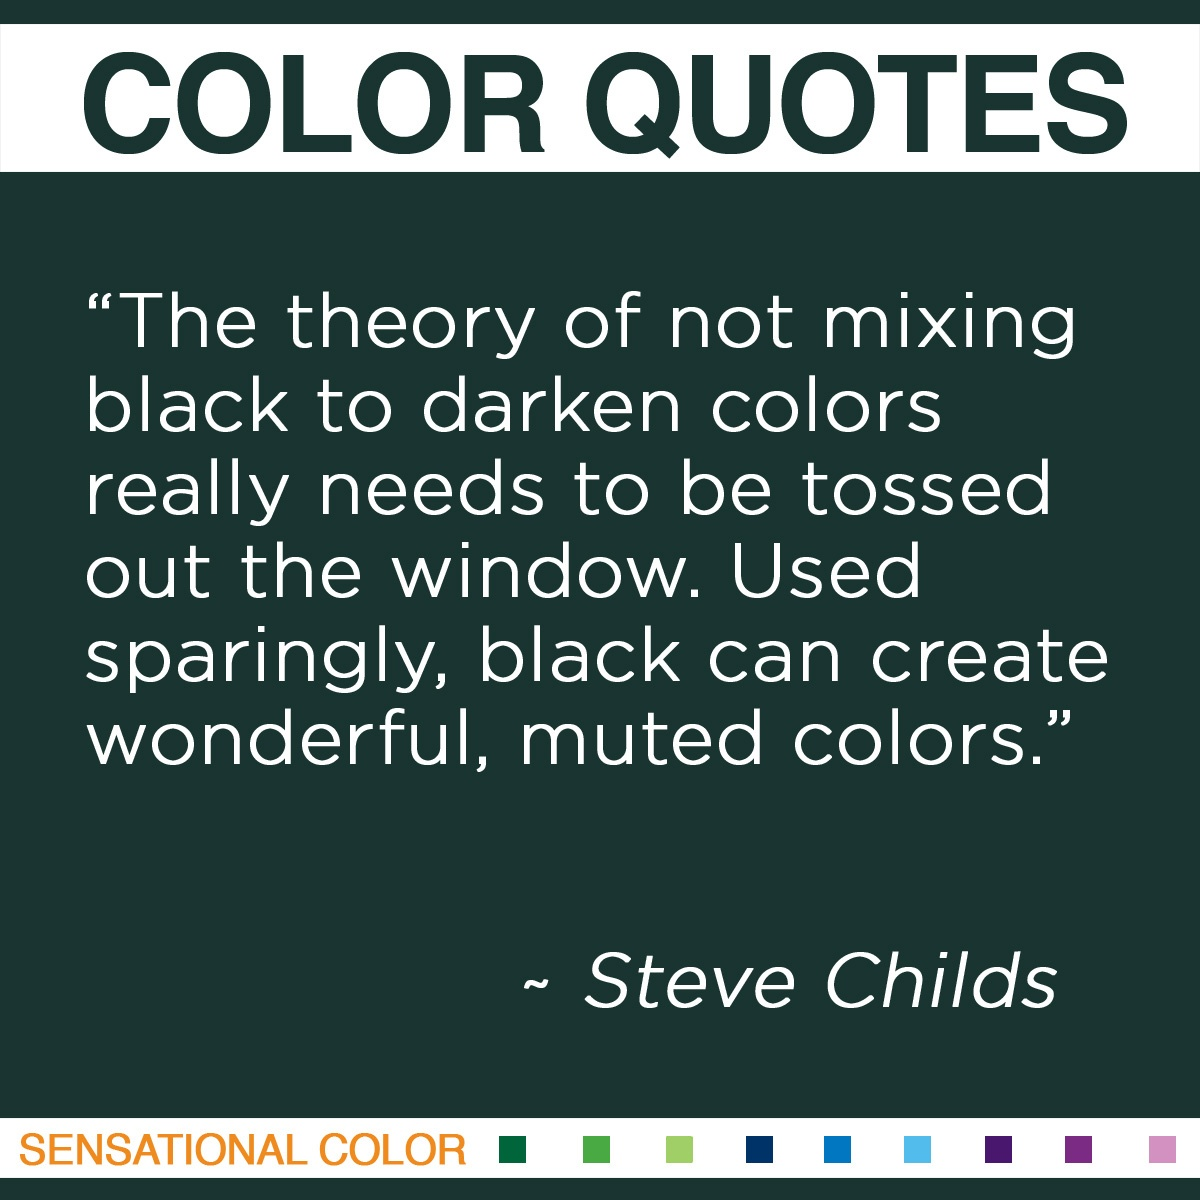 """The theory of not mixing black to darken colors really needs to be tossed out the window. Used sparingly, black can create wonderful, muted colors."" - Steve Childs"